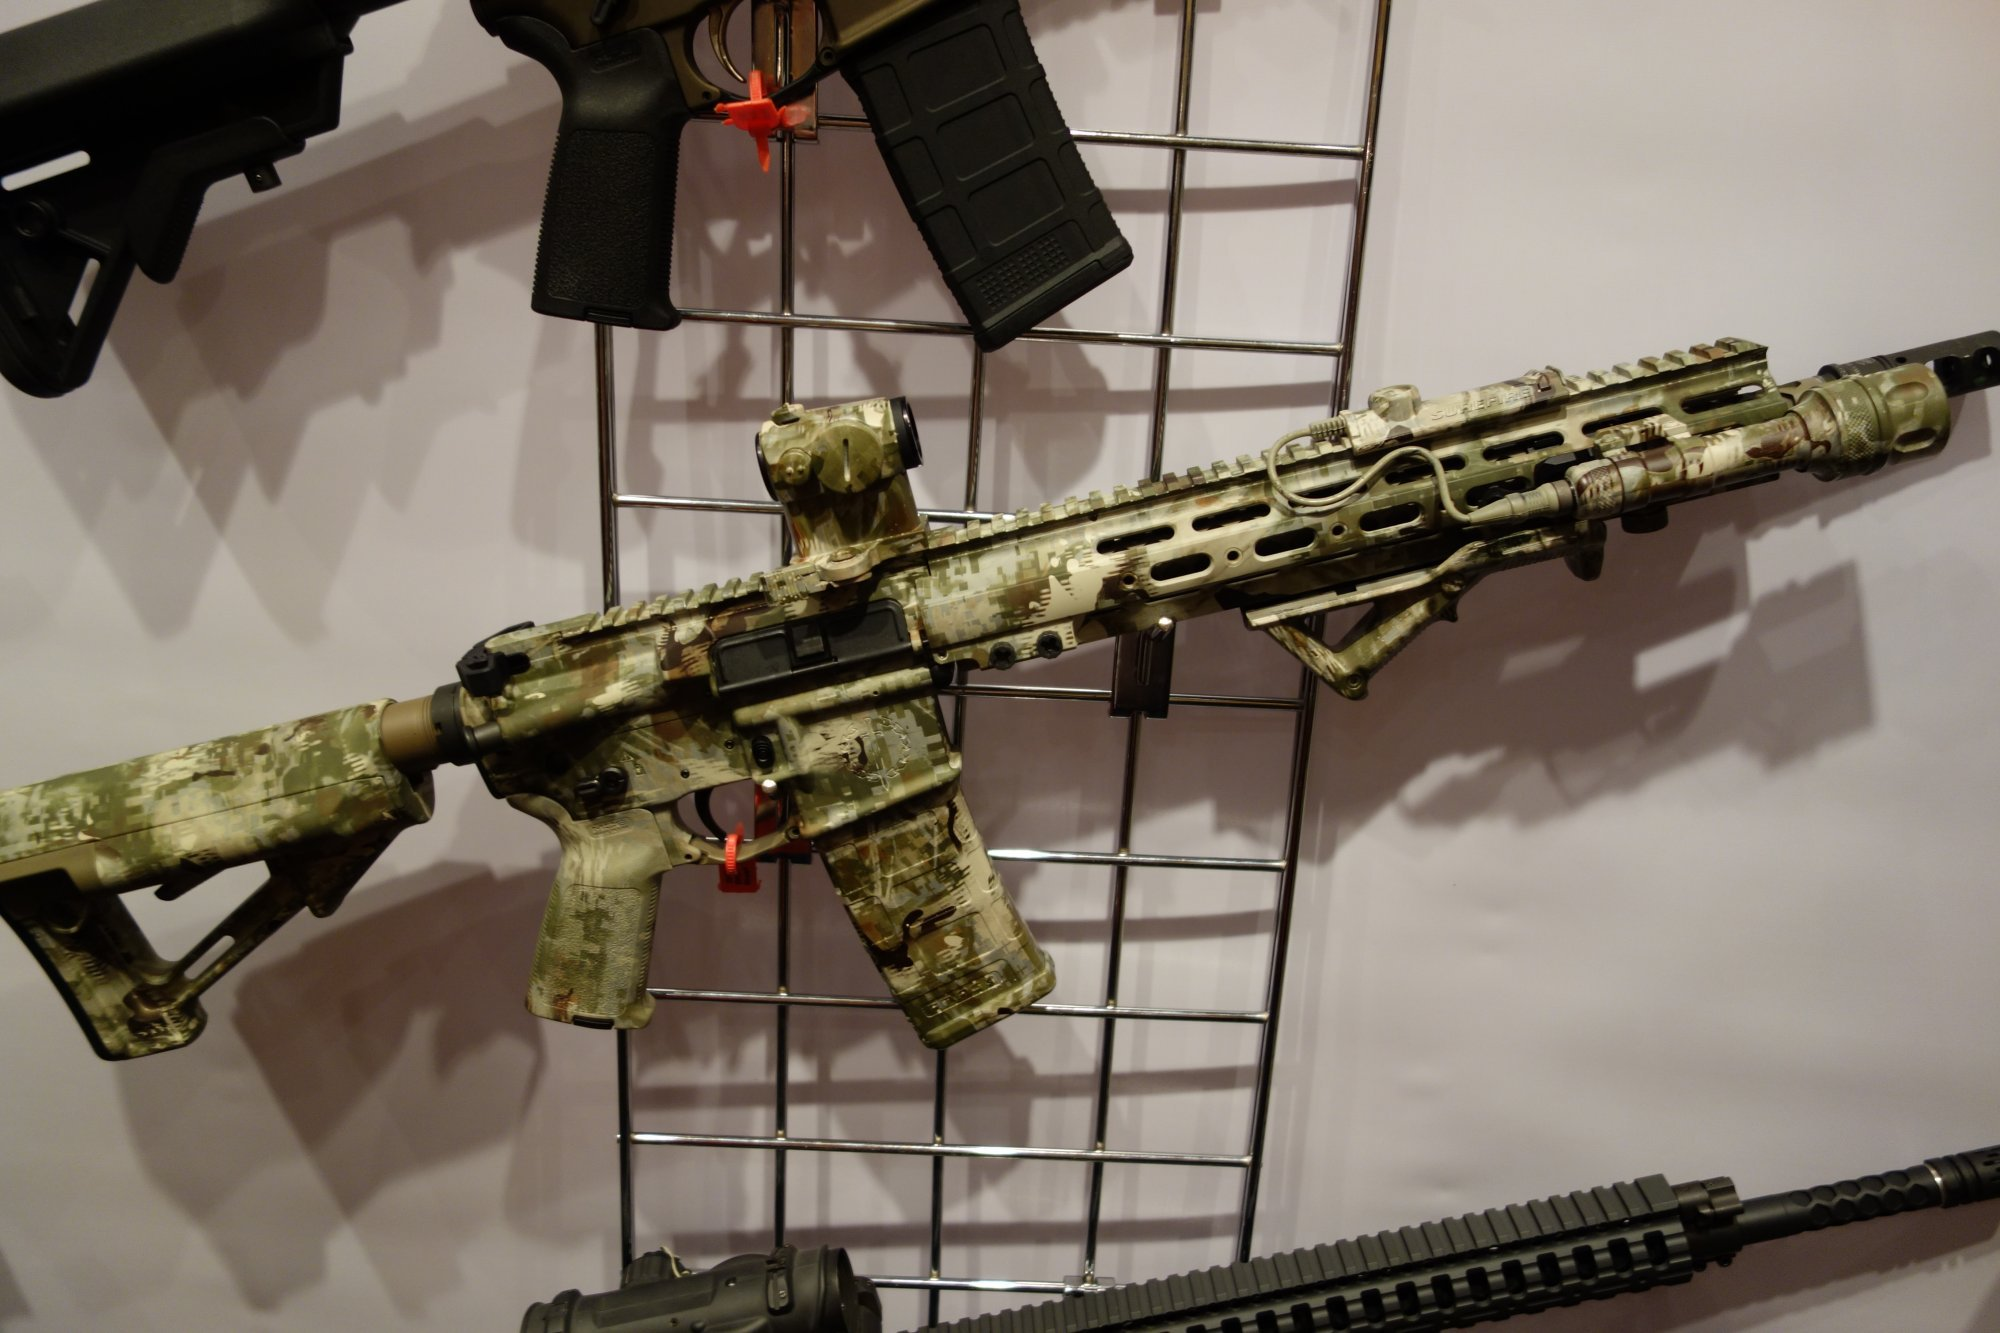 Legion Firearms LF-4D Orion Design Group (ODG) Edition: Signature Series High-End Tactical AR-15 Carbine with ODG Lupus Camouflage Pattern Finish (Video!)